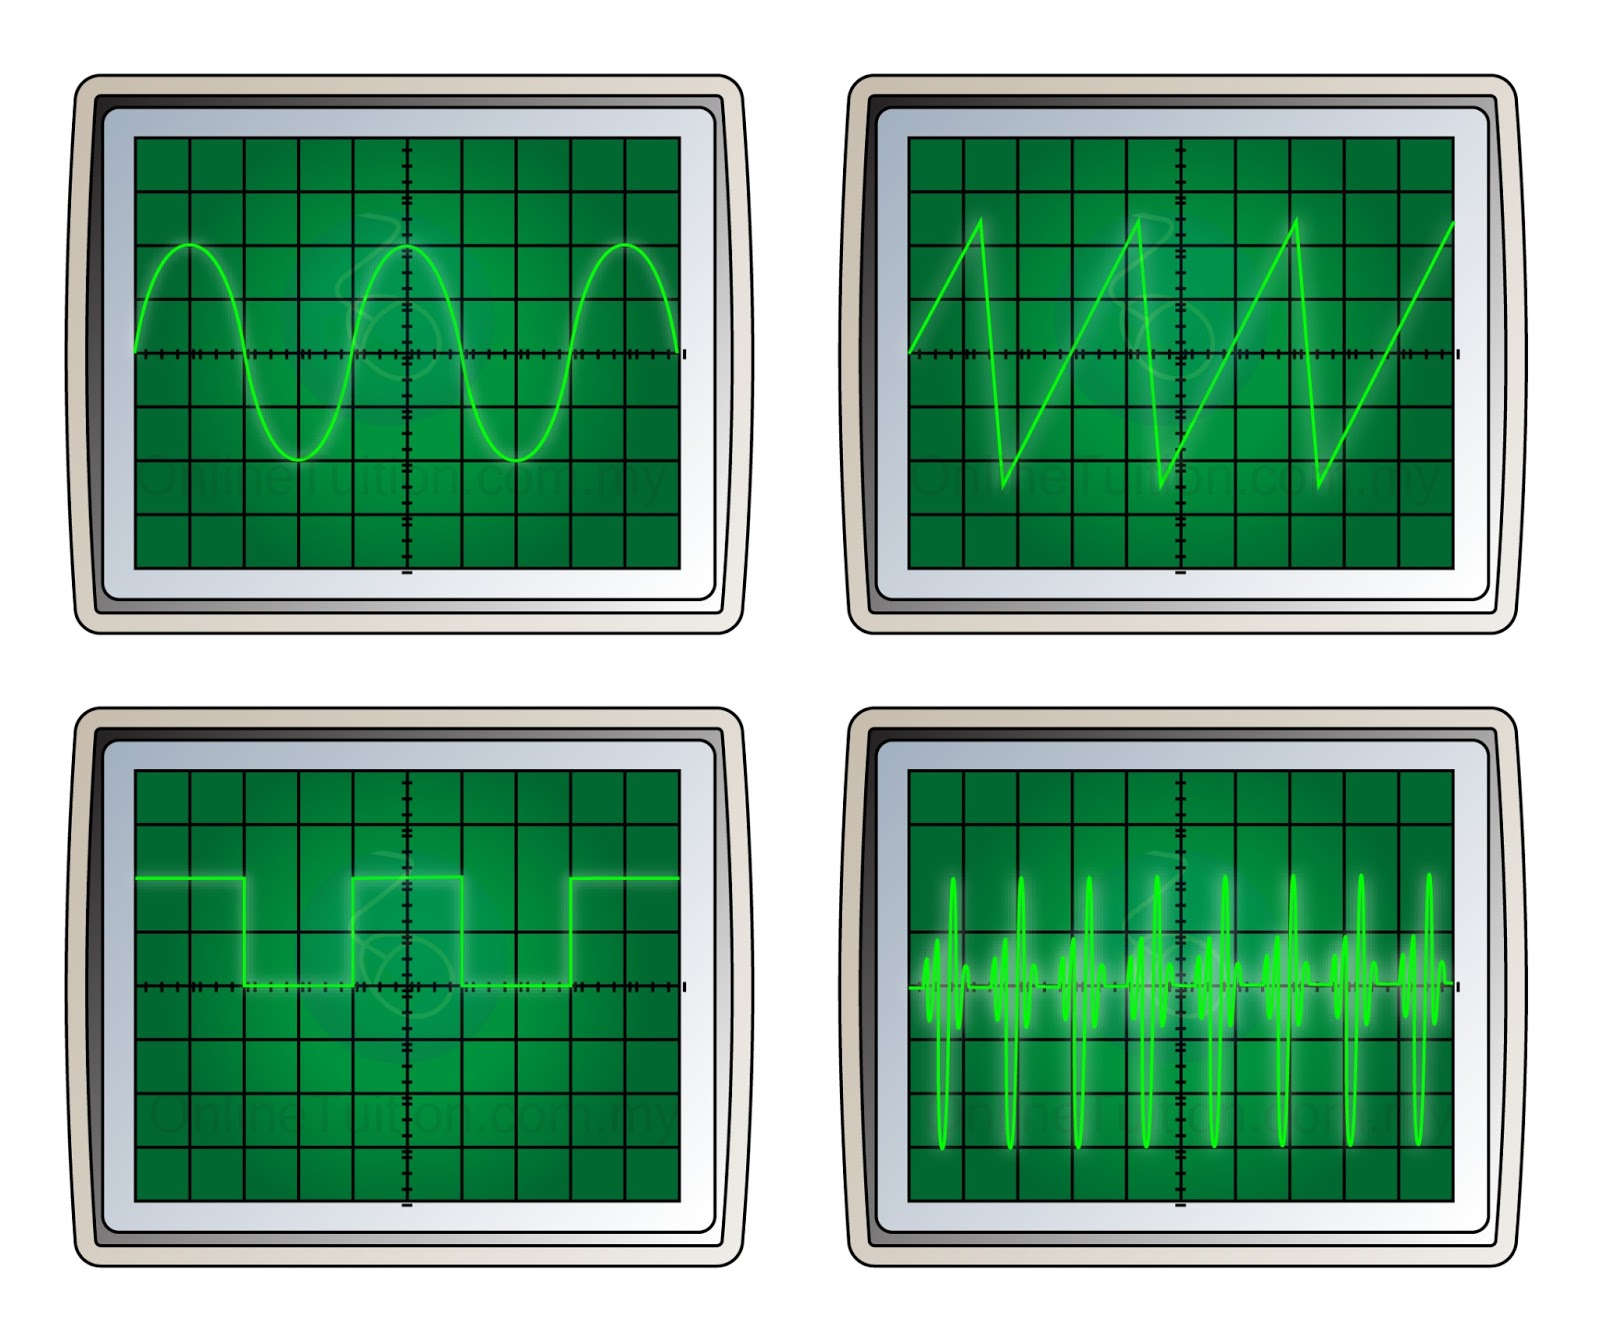 Cathode Ray Oscilloscope : Uses of cathode ray oscilloscope spm physics form